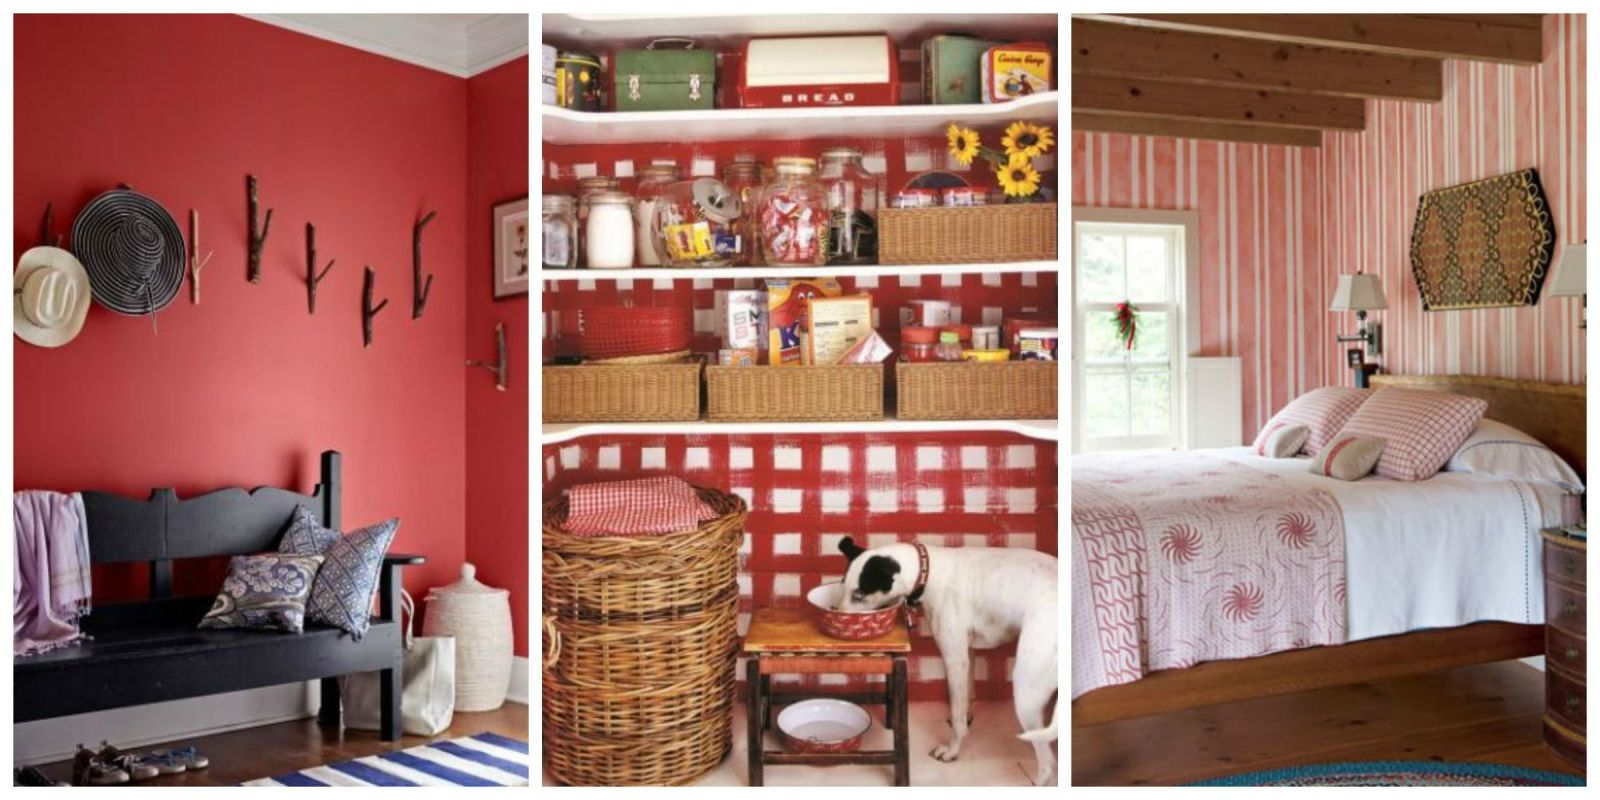 Bedroom Decor Red decorating with red - ideas for red rooms and home decor